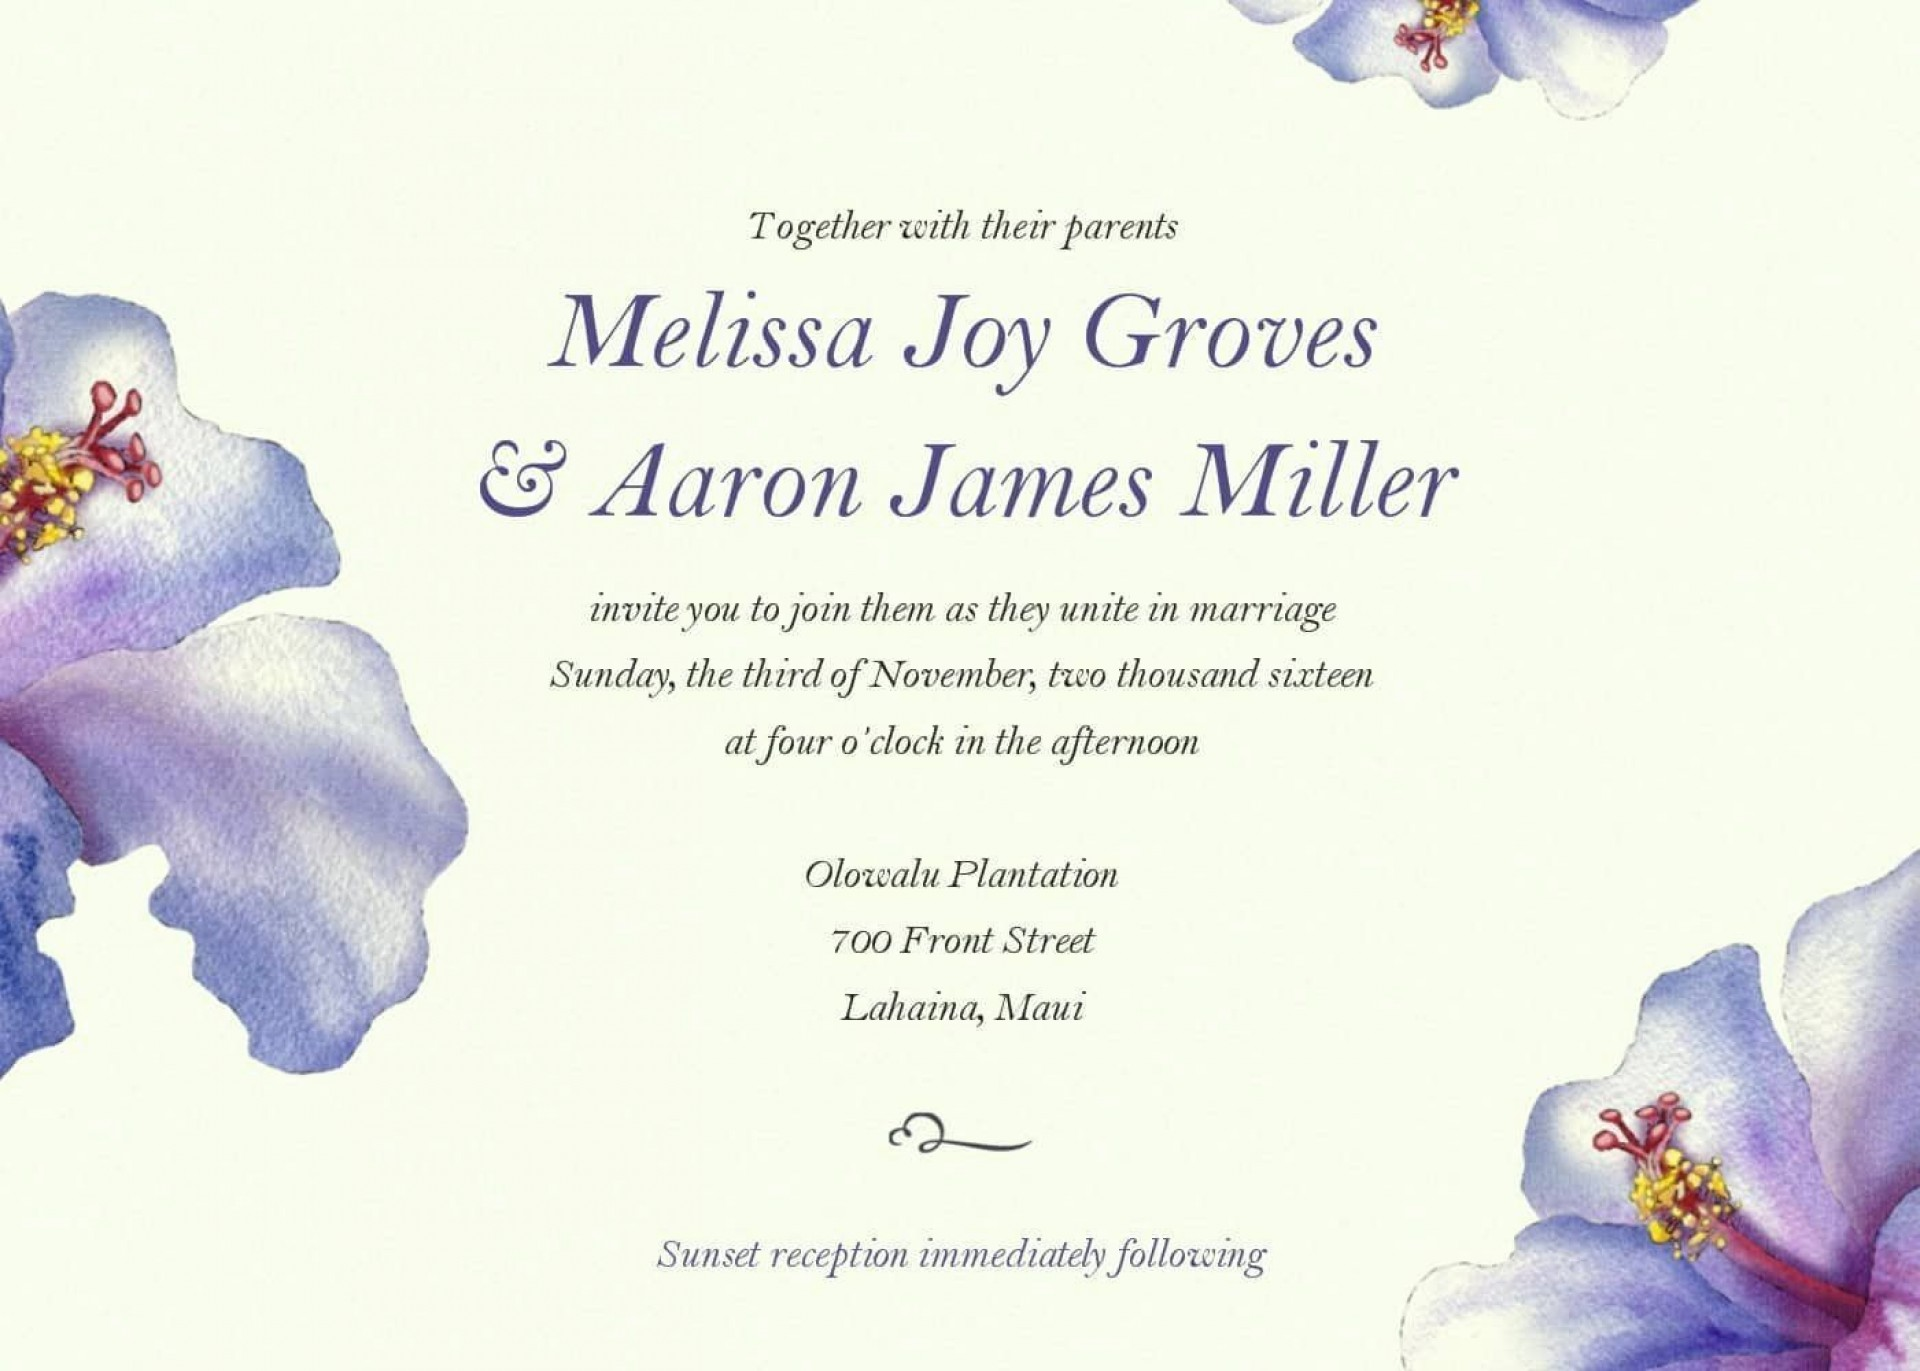 005 Incredible Microsoft Office Wedding Invitation Template Highest Quality  Templates M1920